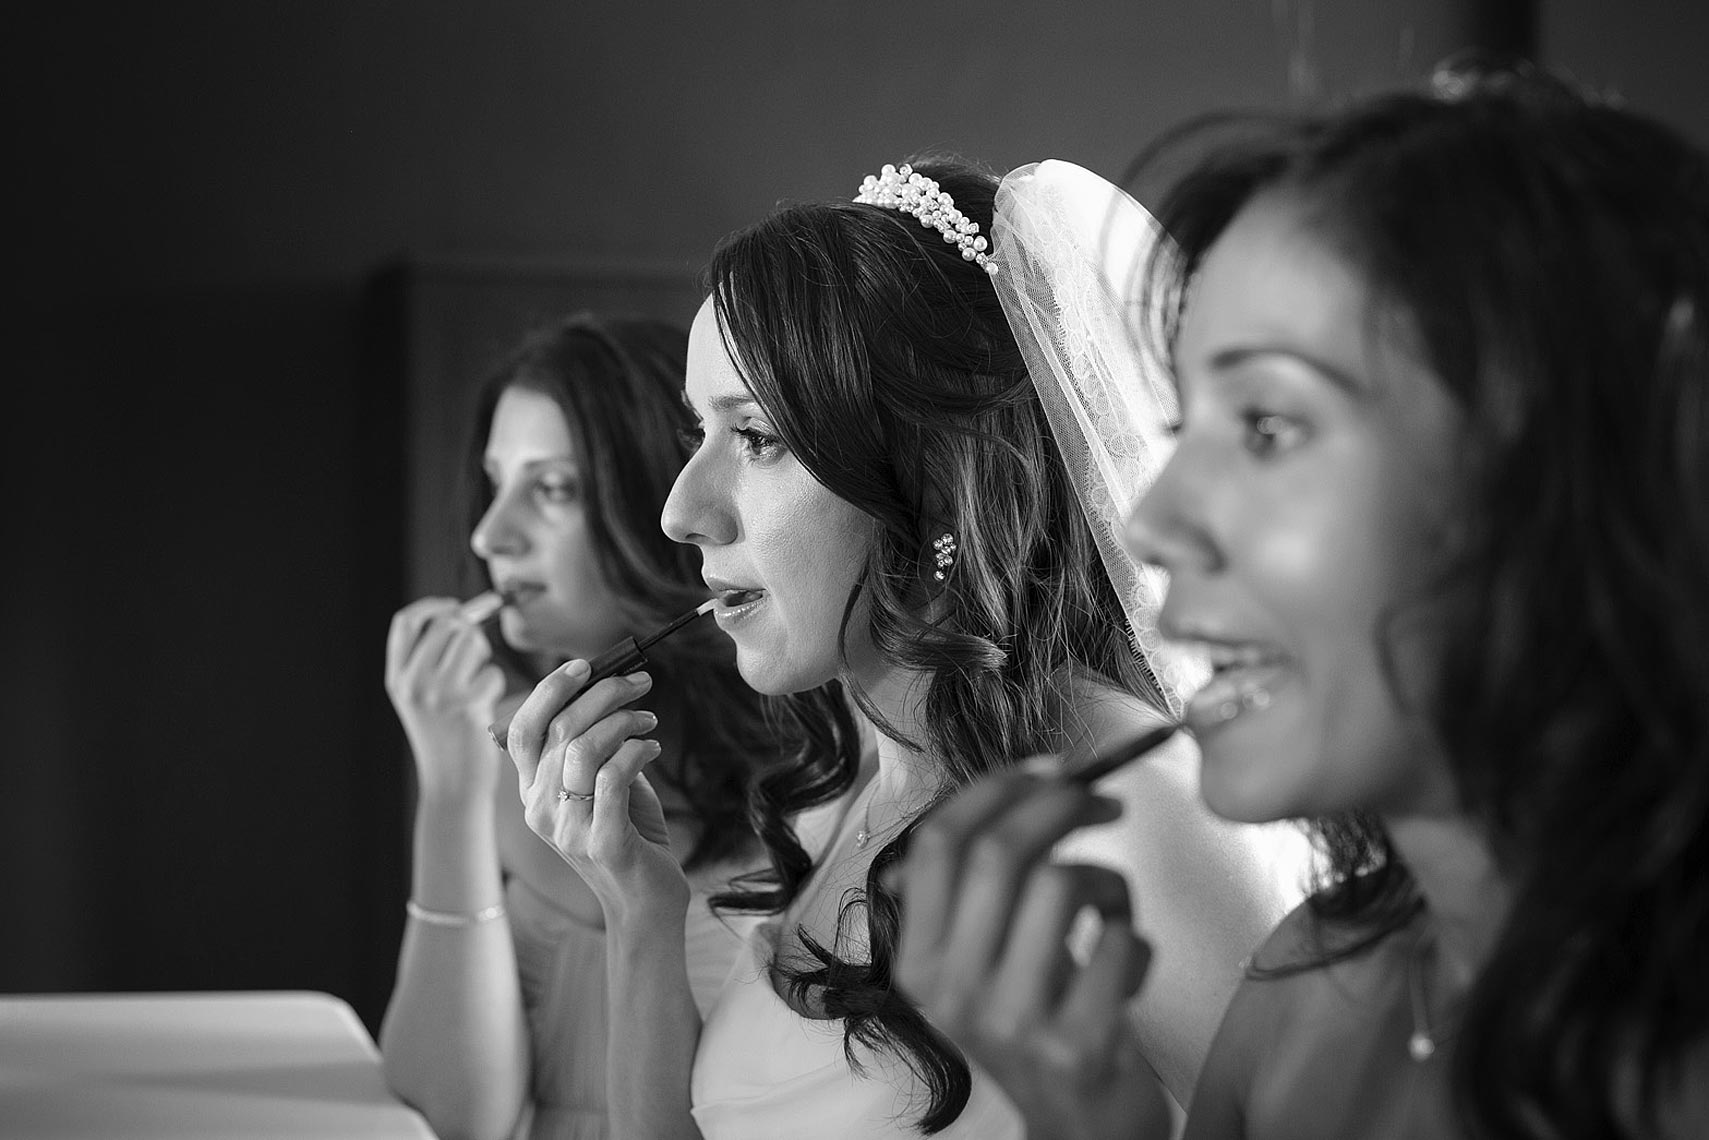 reportage-bride-and-bridesmaids-wedding-photography.jpg